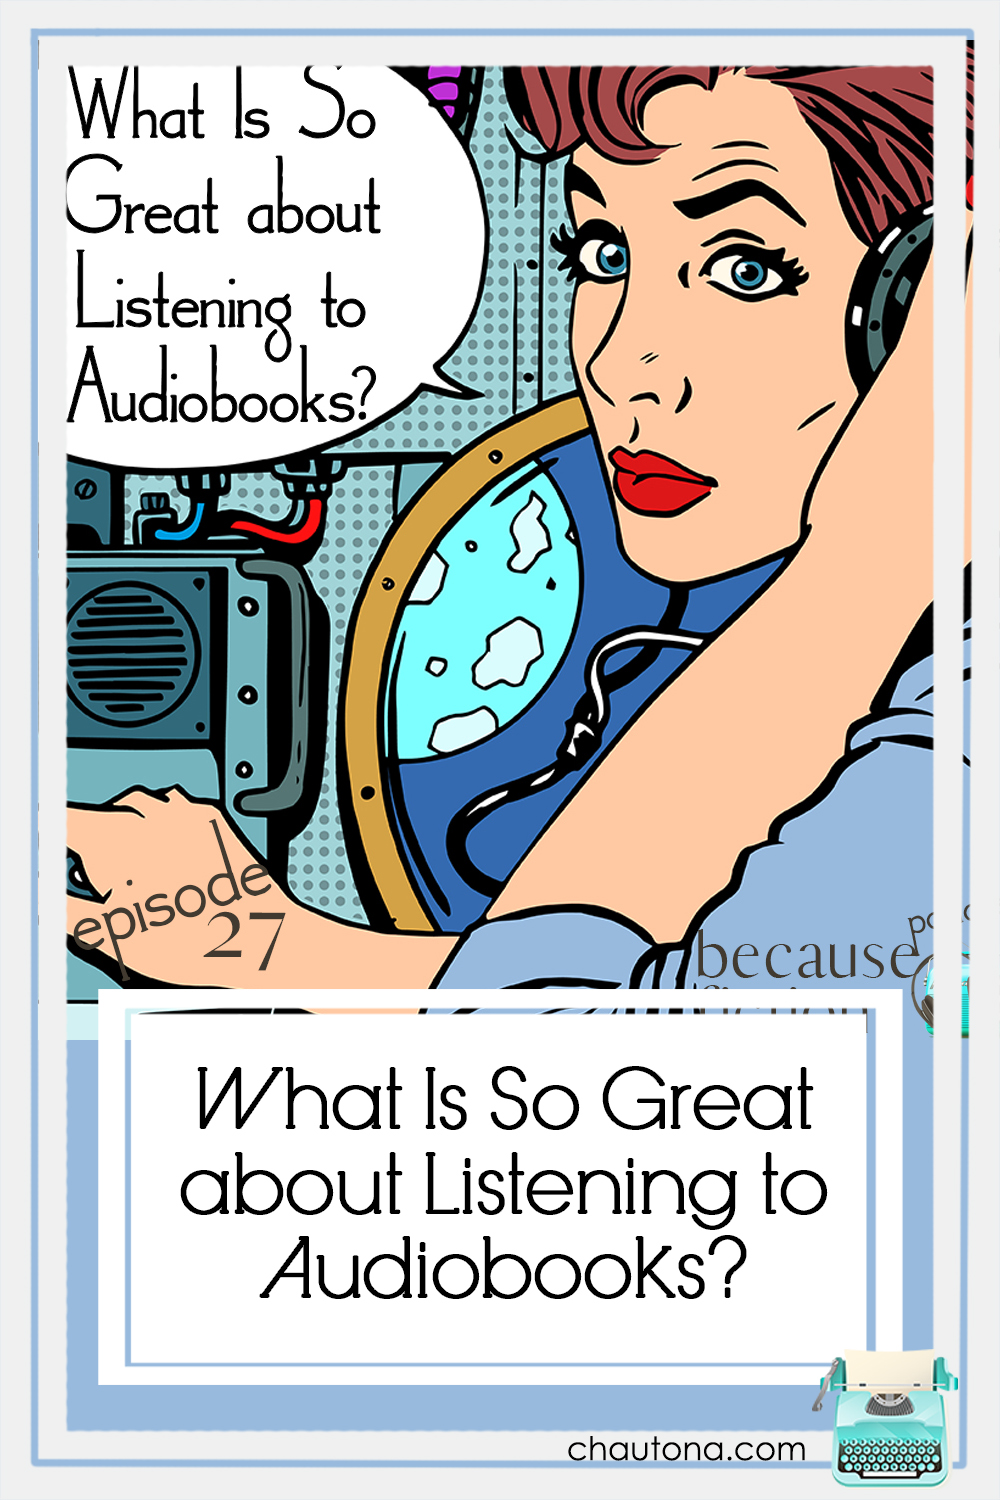 Audiobooks are both the fastest-growing sector of the book industry as well as one of the most polarizing among readers. Why? via @chautonahavig